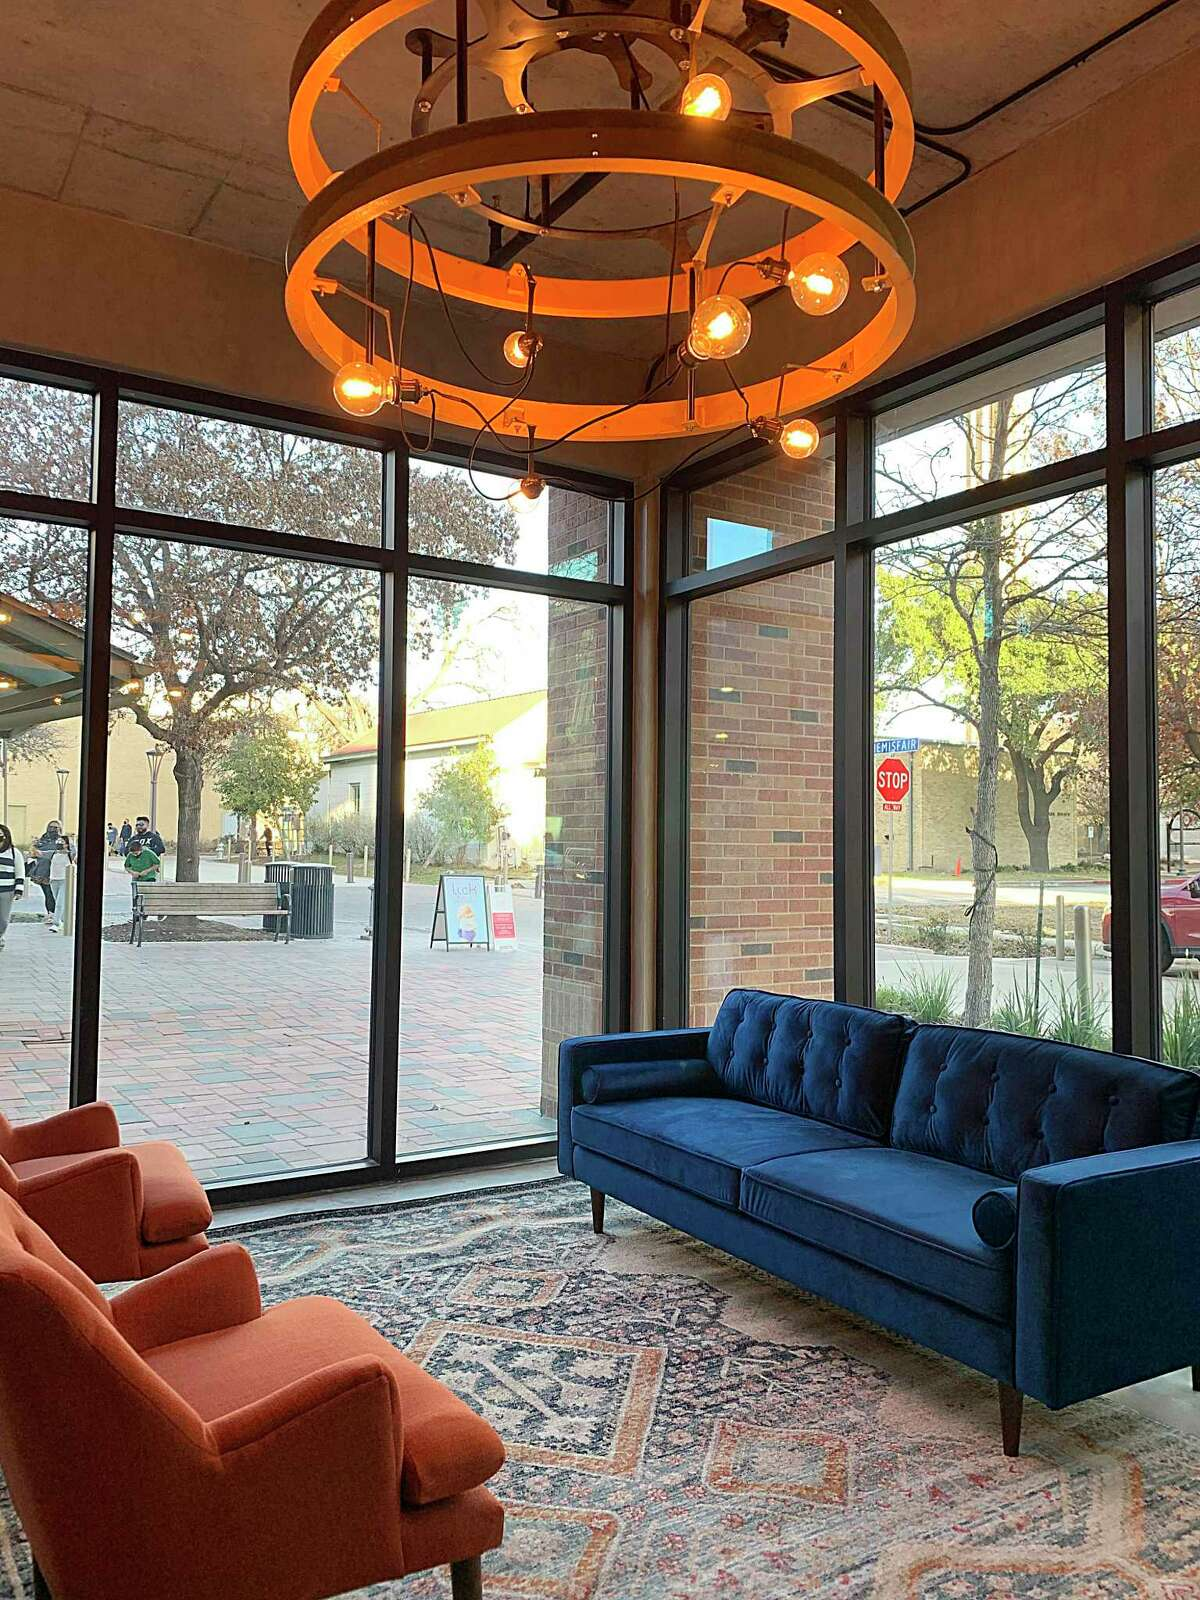 Re:Rooted 210 Urban Winery, a wine bar specializing in Texas wines made and curated by sommelier Jennifer Beckmann, is set to open soon at Hemisfair at the new apartment development The '68.